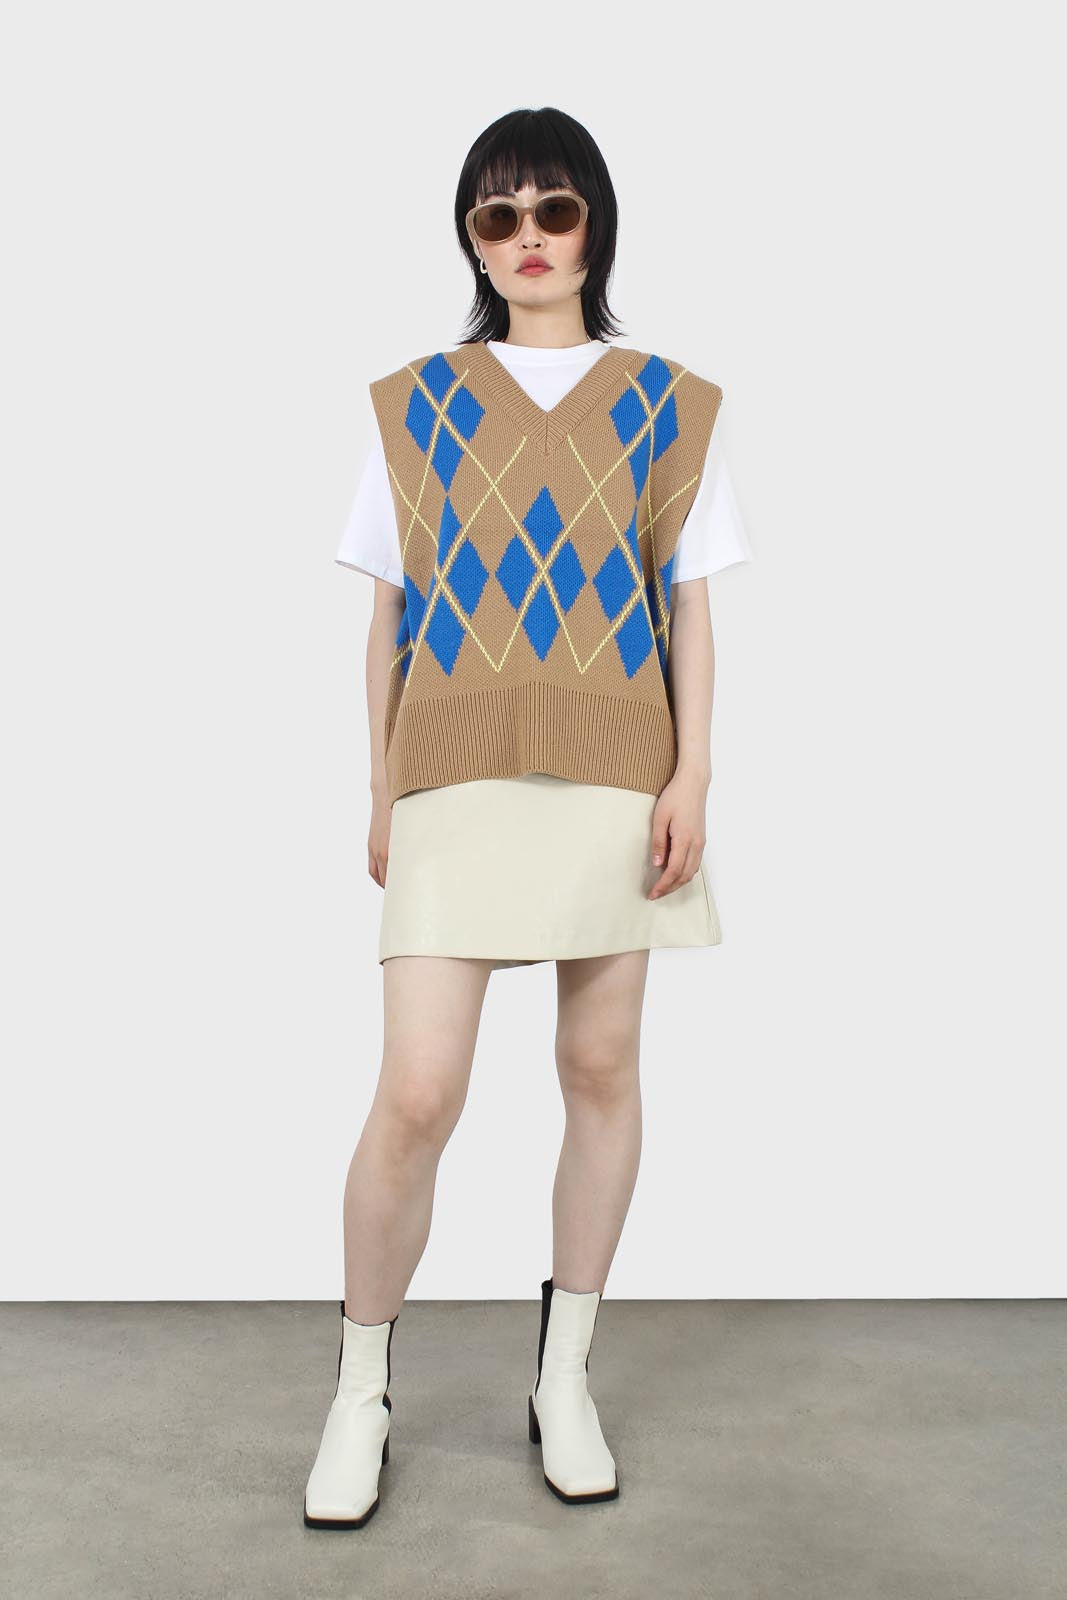 Camel and bright blue argyle sweater vest7